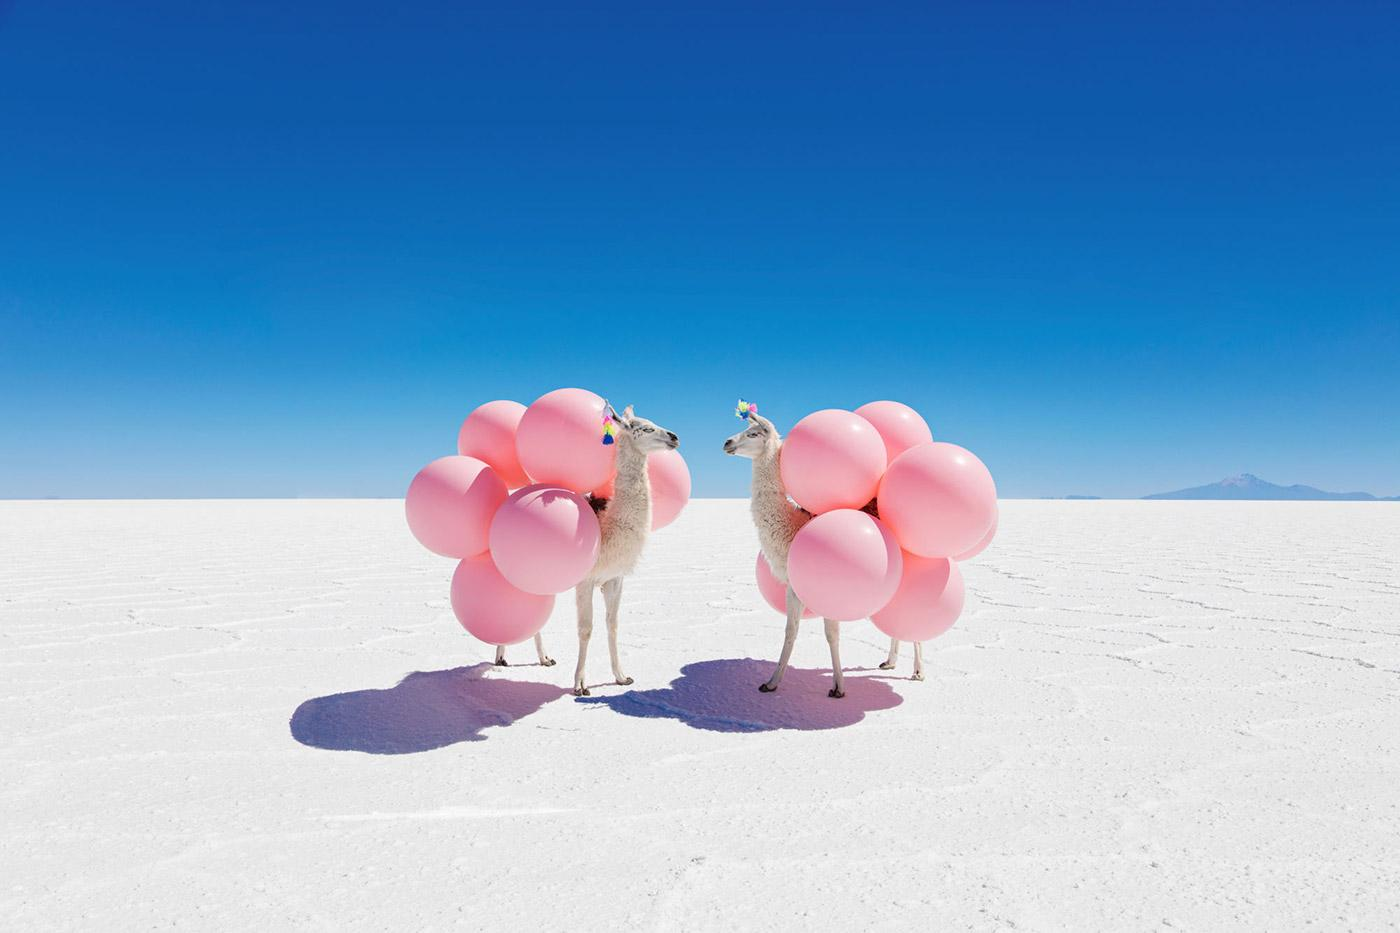 Macintosh HD:Users:Tessa:Dropbox:*Blog Images* (1):NOVEMBER 2017:10 New Releases:*Resized*:Two-Llamas-with-Pink-Balloons.jpg